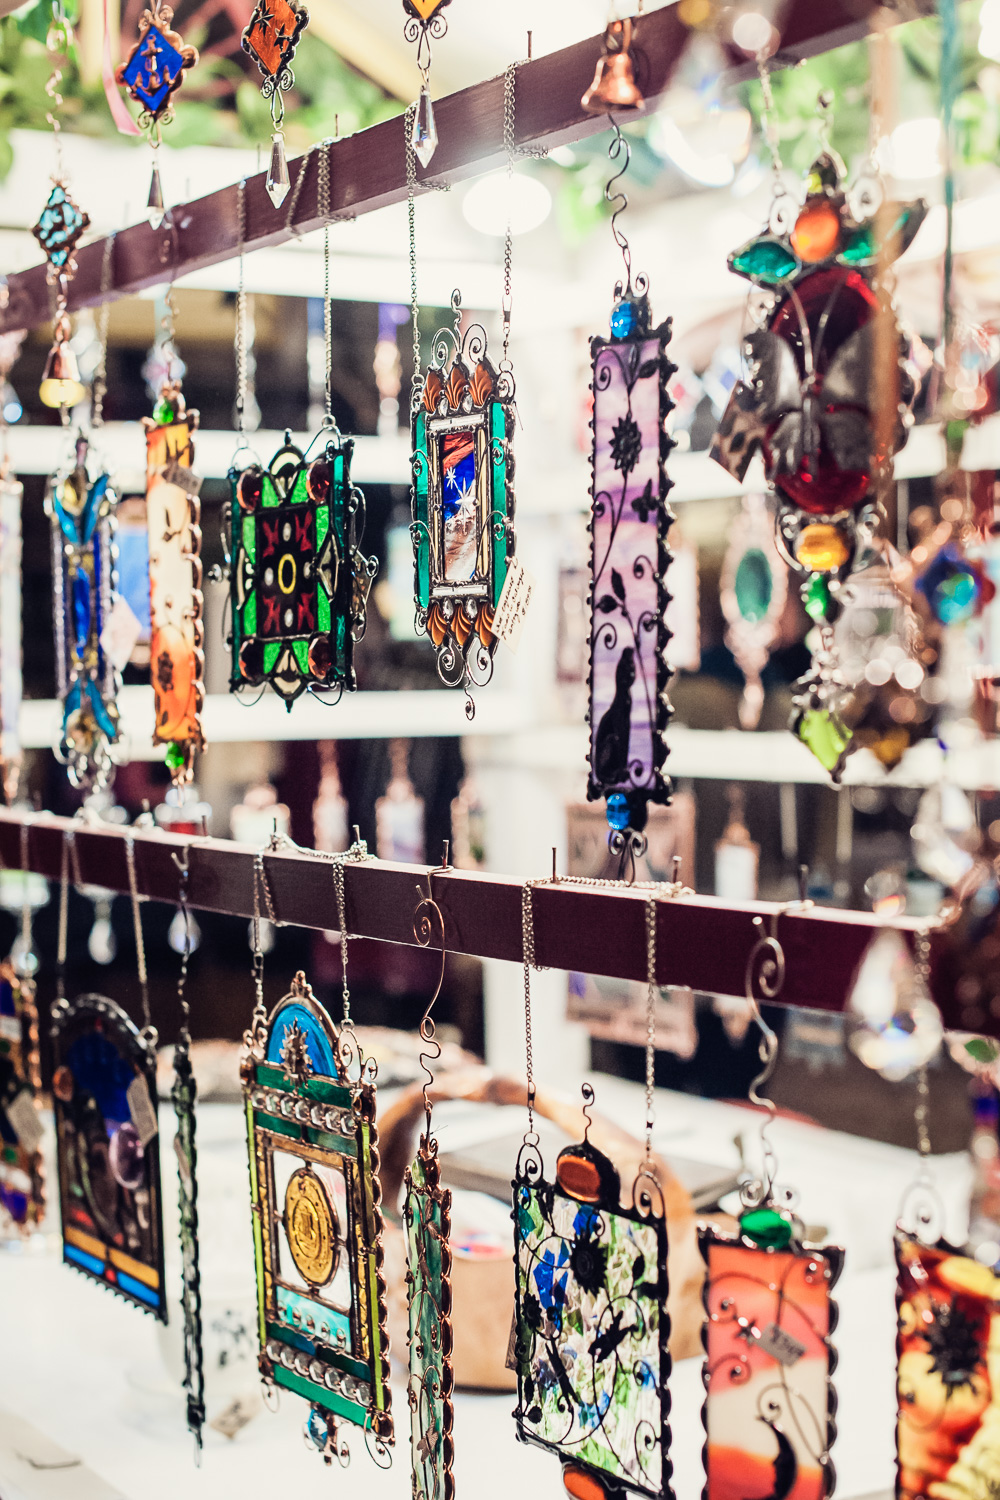 Stained Glass Creations // The Great Christmas Dickens Fair // Ashley Petersen Photo